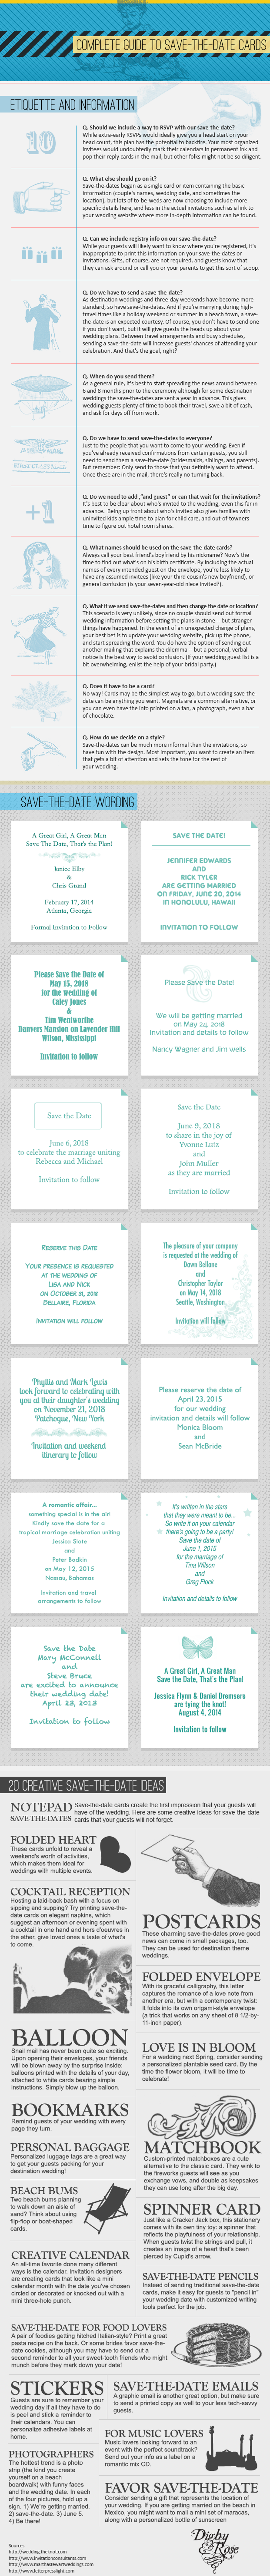 15 destination wedding save the date wording examples etiquette 15 destination wedding save the date wording examples brandongaille stopboris Image collections